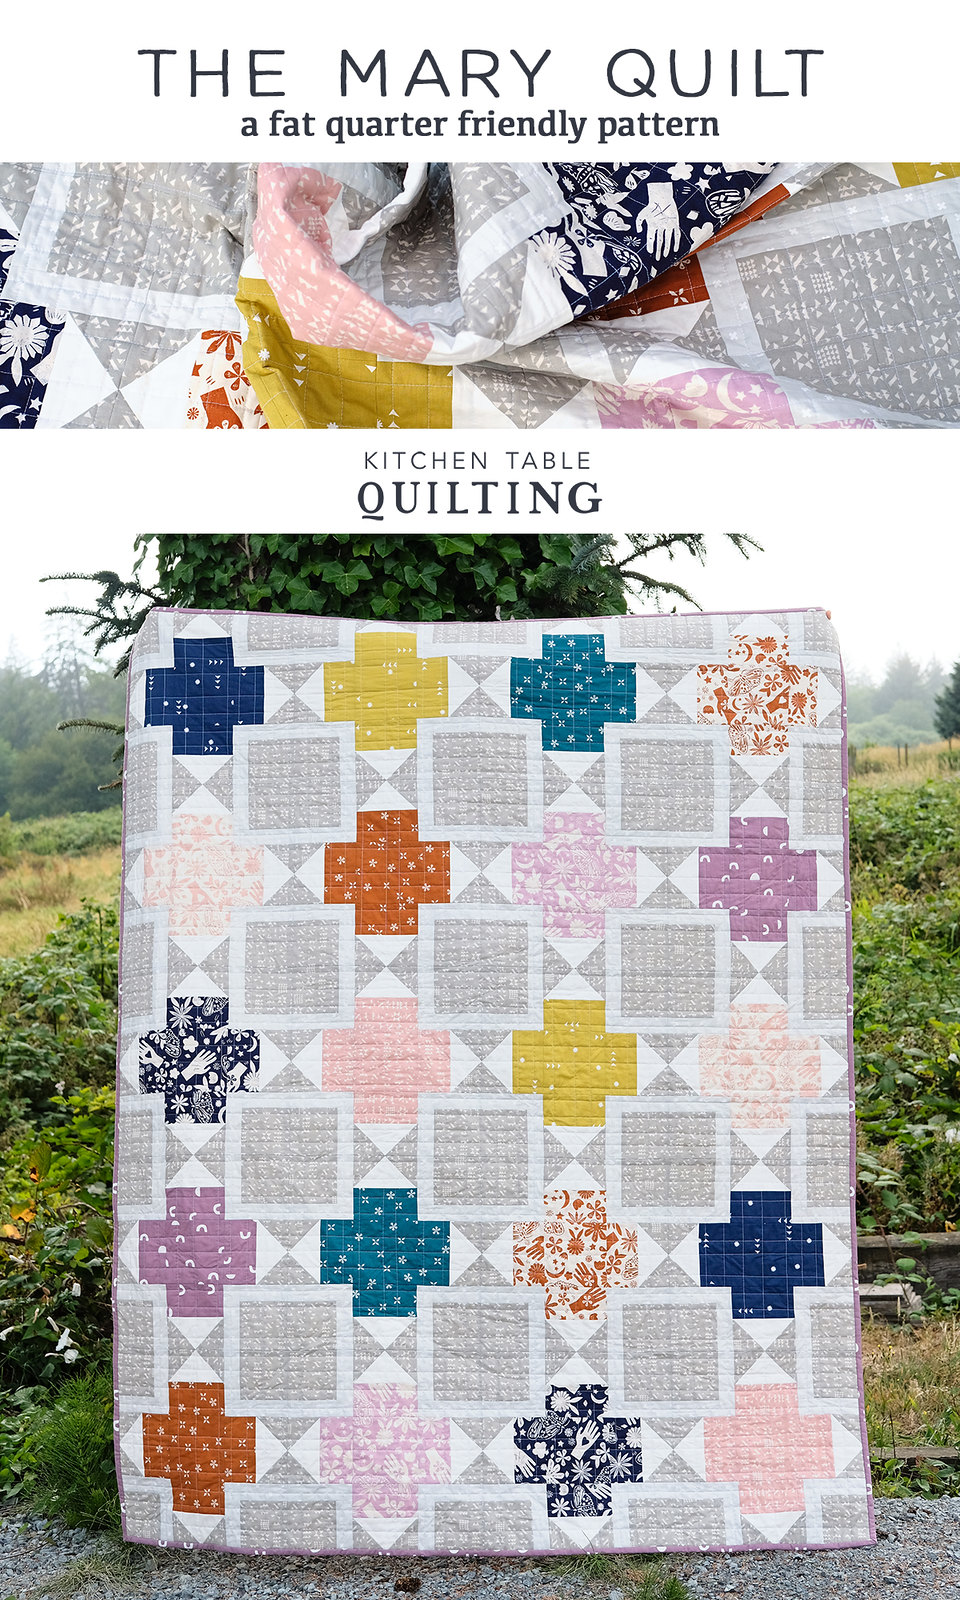 The Mary Quilt - Kitchen Table Quilting